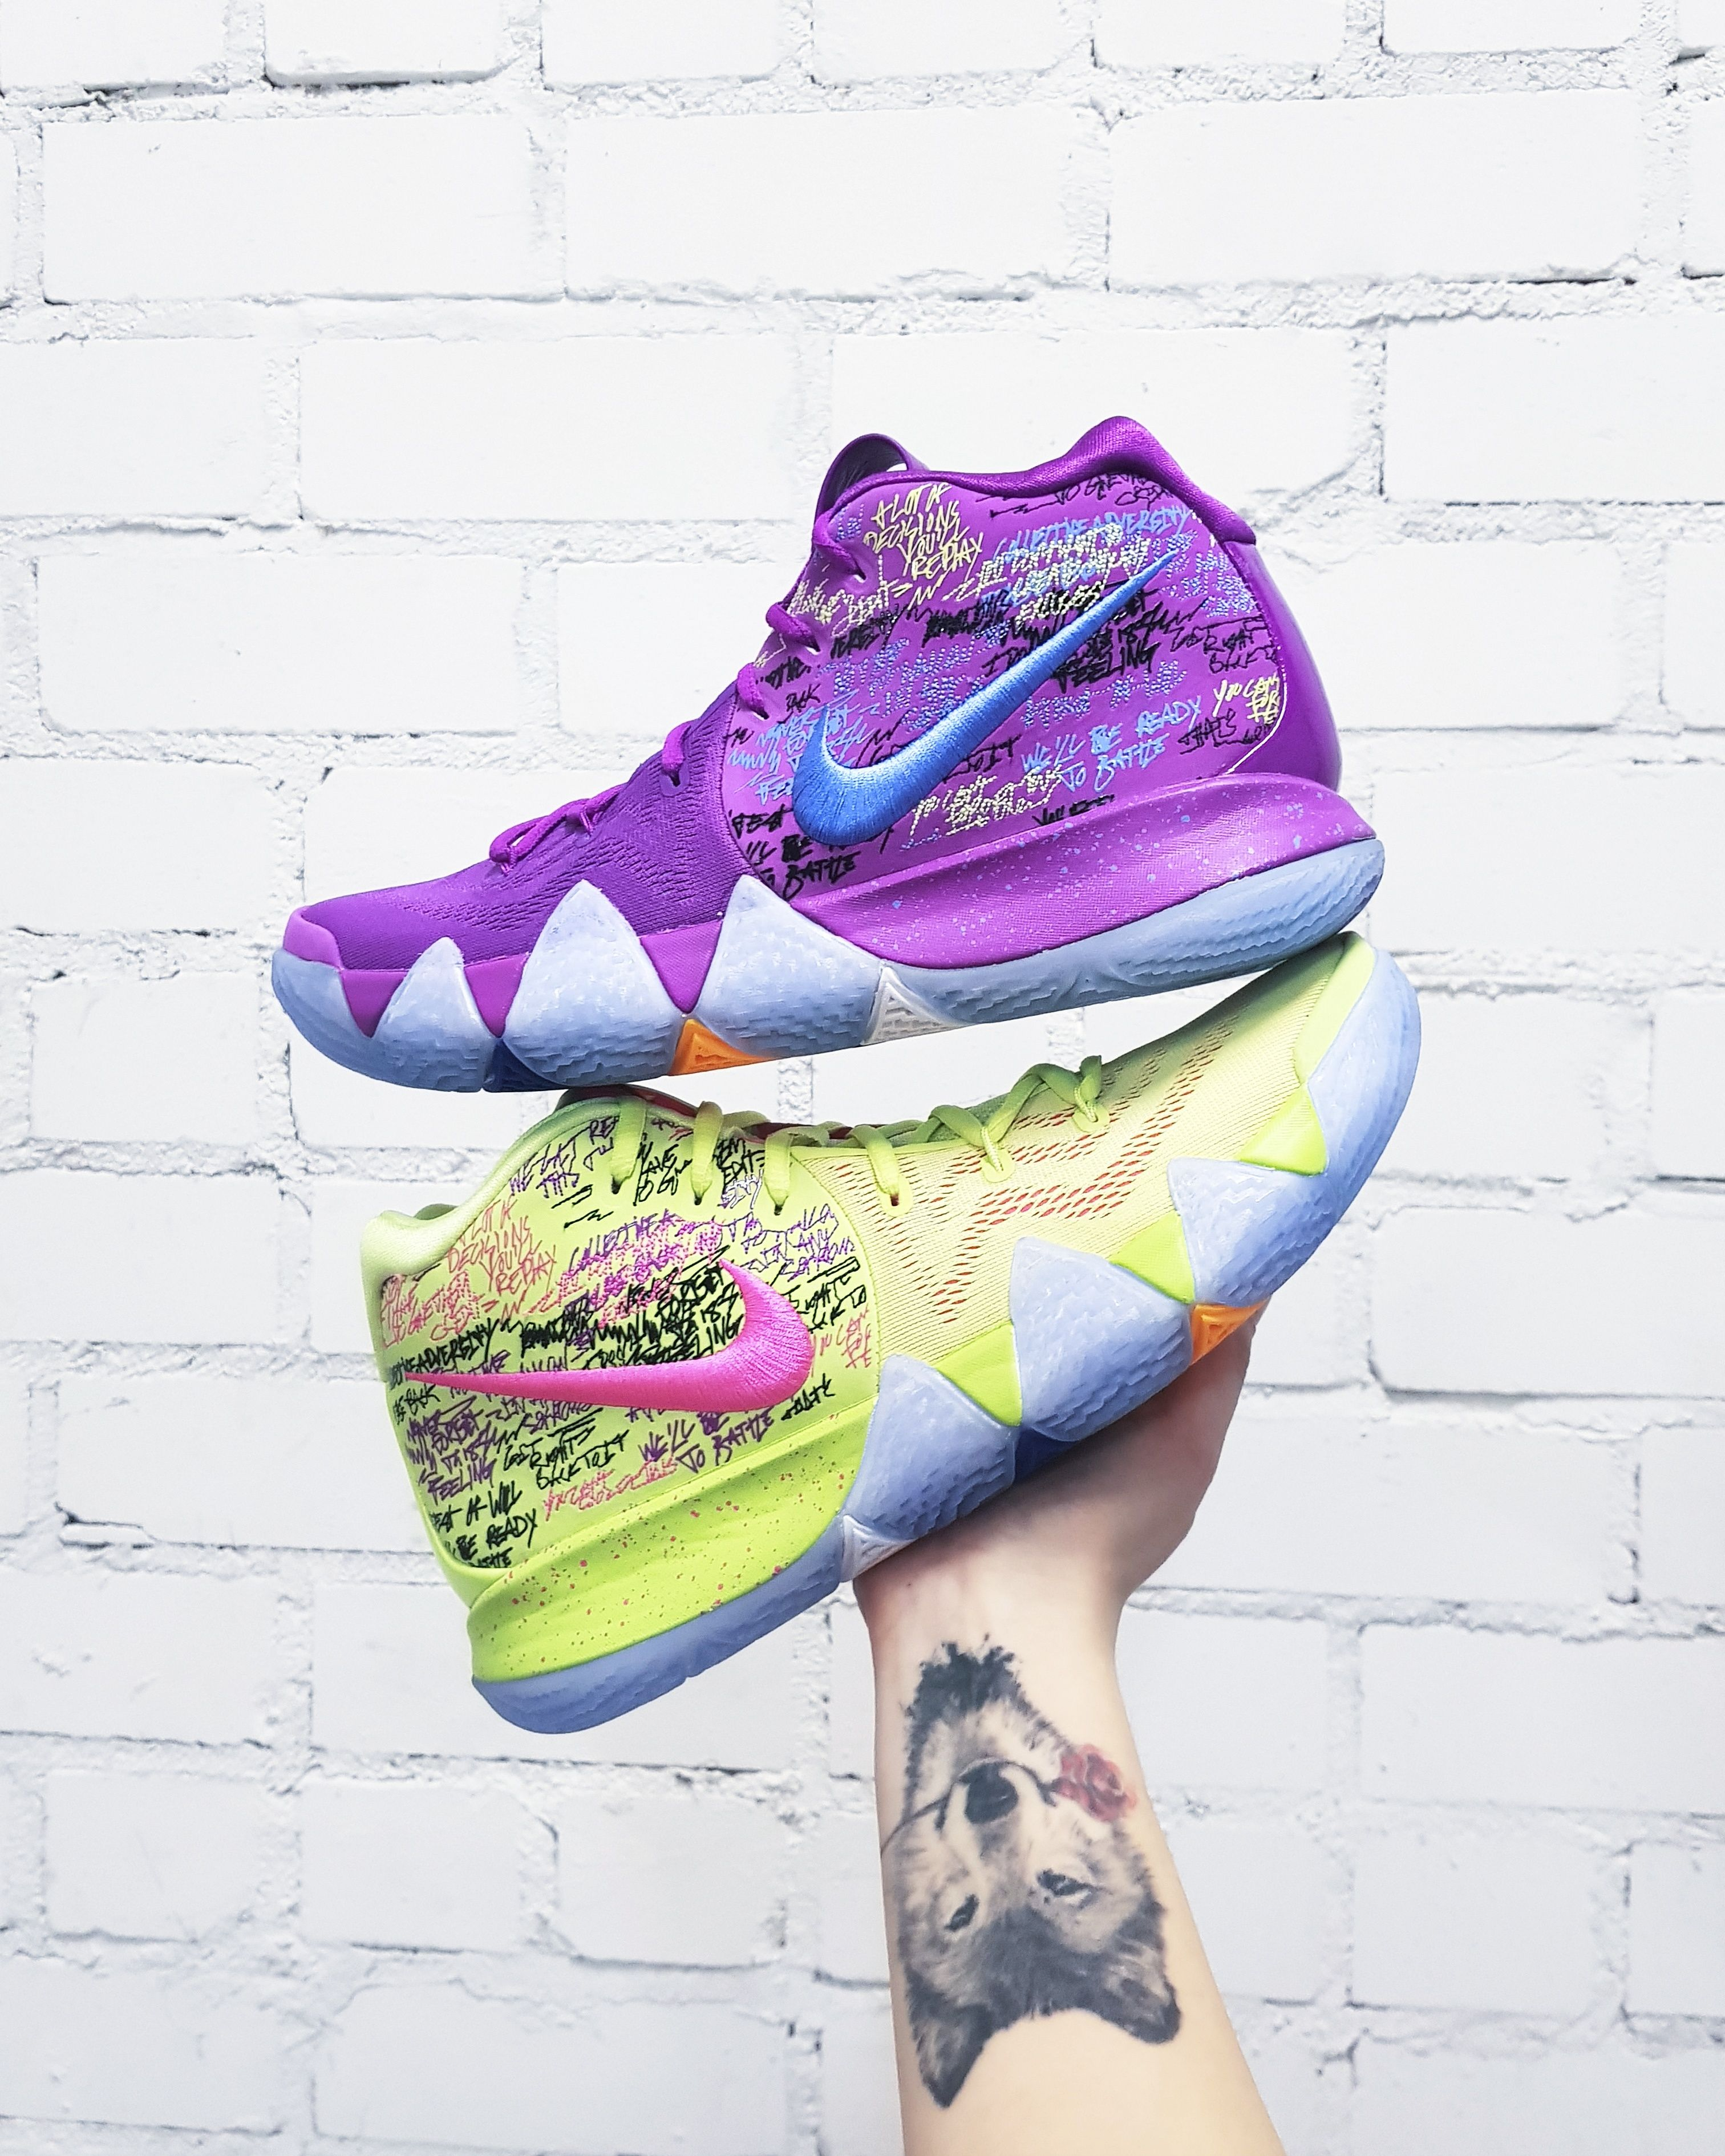 timeless design e8c1a 9fee7 Nike Kyrie 4 Confetti | Basketball shoes in 2019 | Nike ...